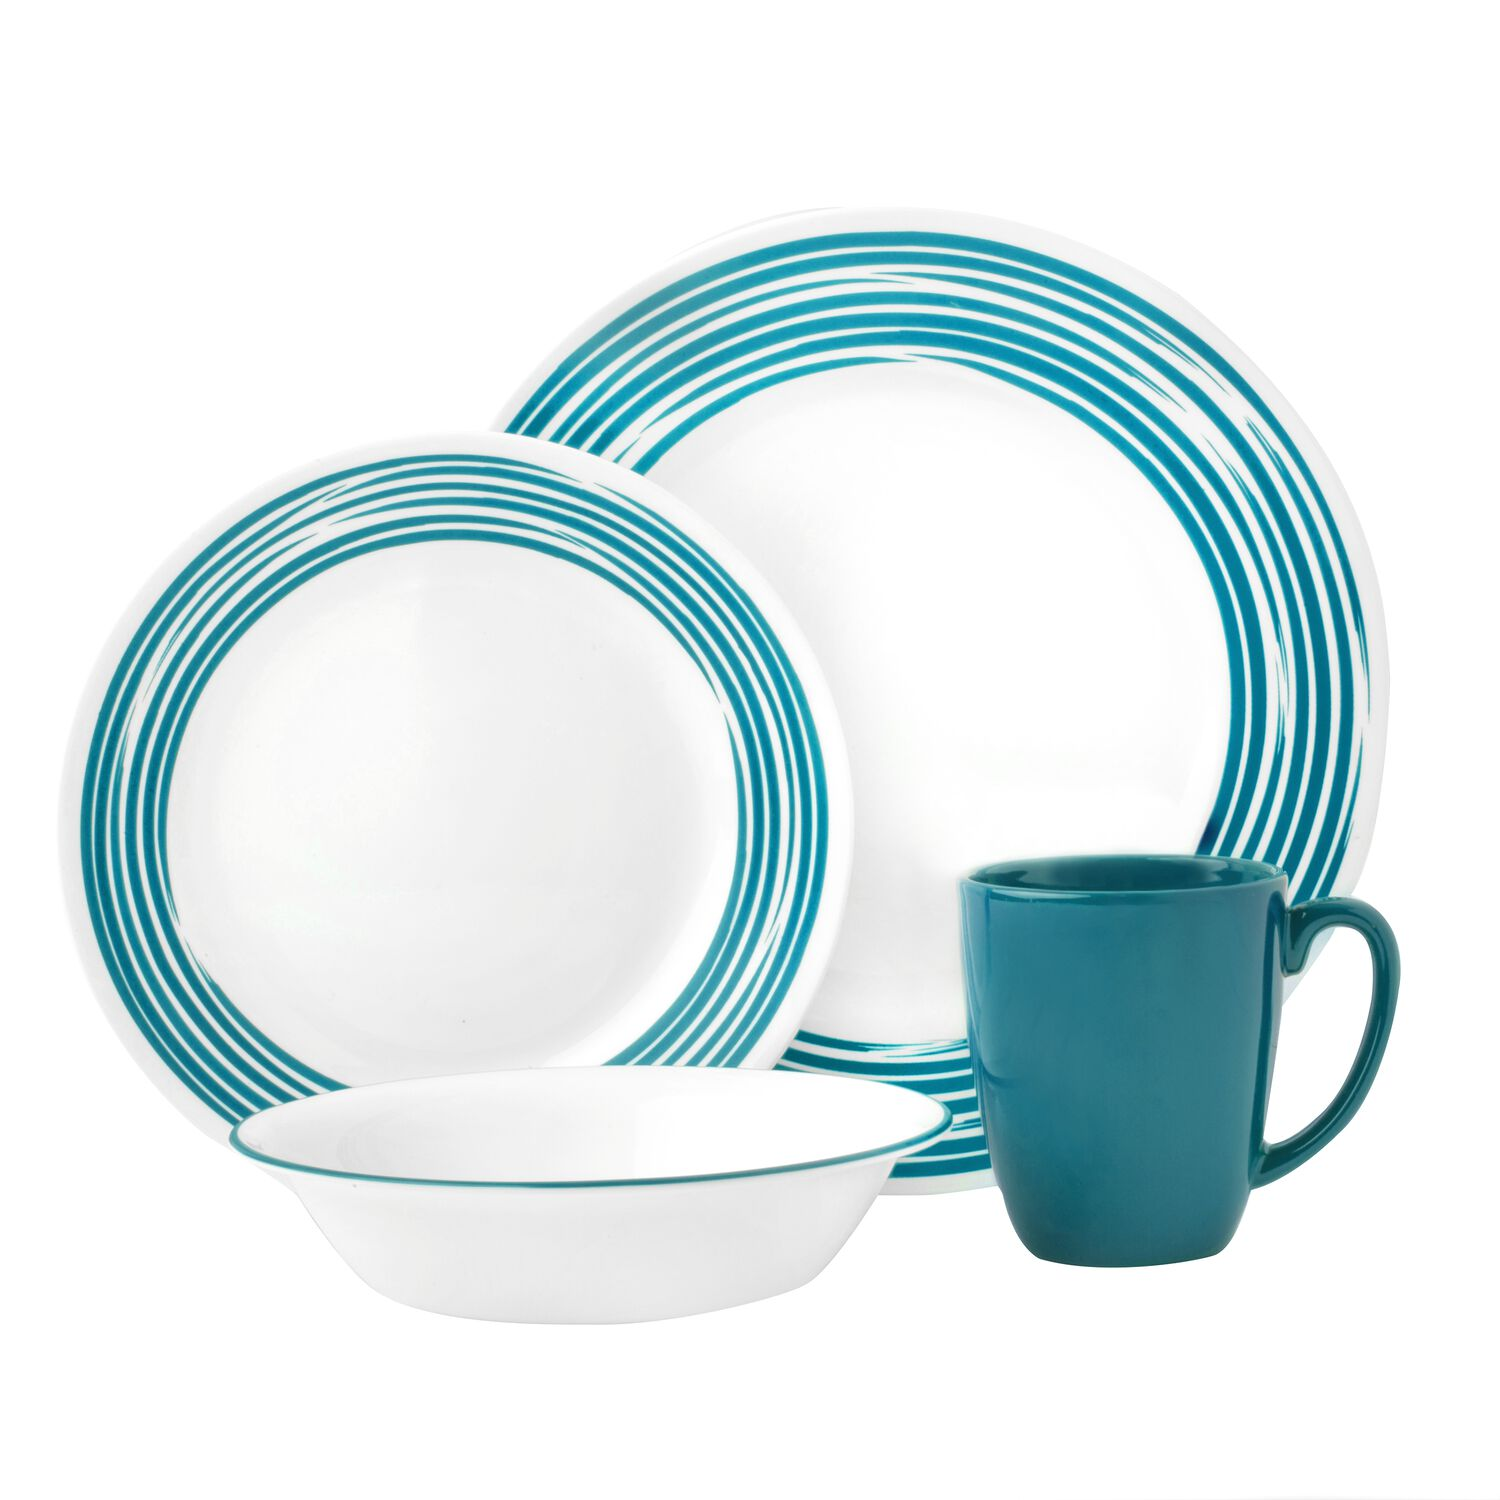 Boutique Brushed 16 Pc Dinnerware Set Turquoise Corelle 174